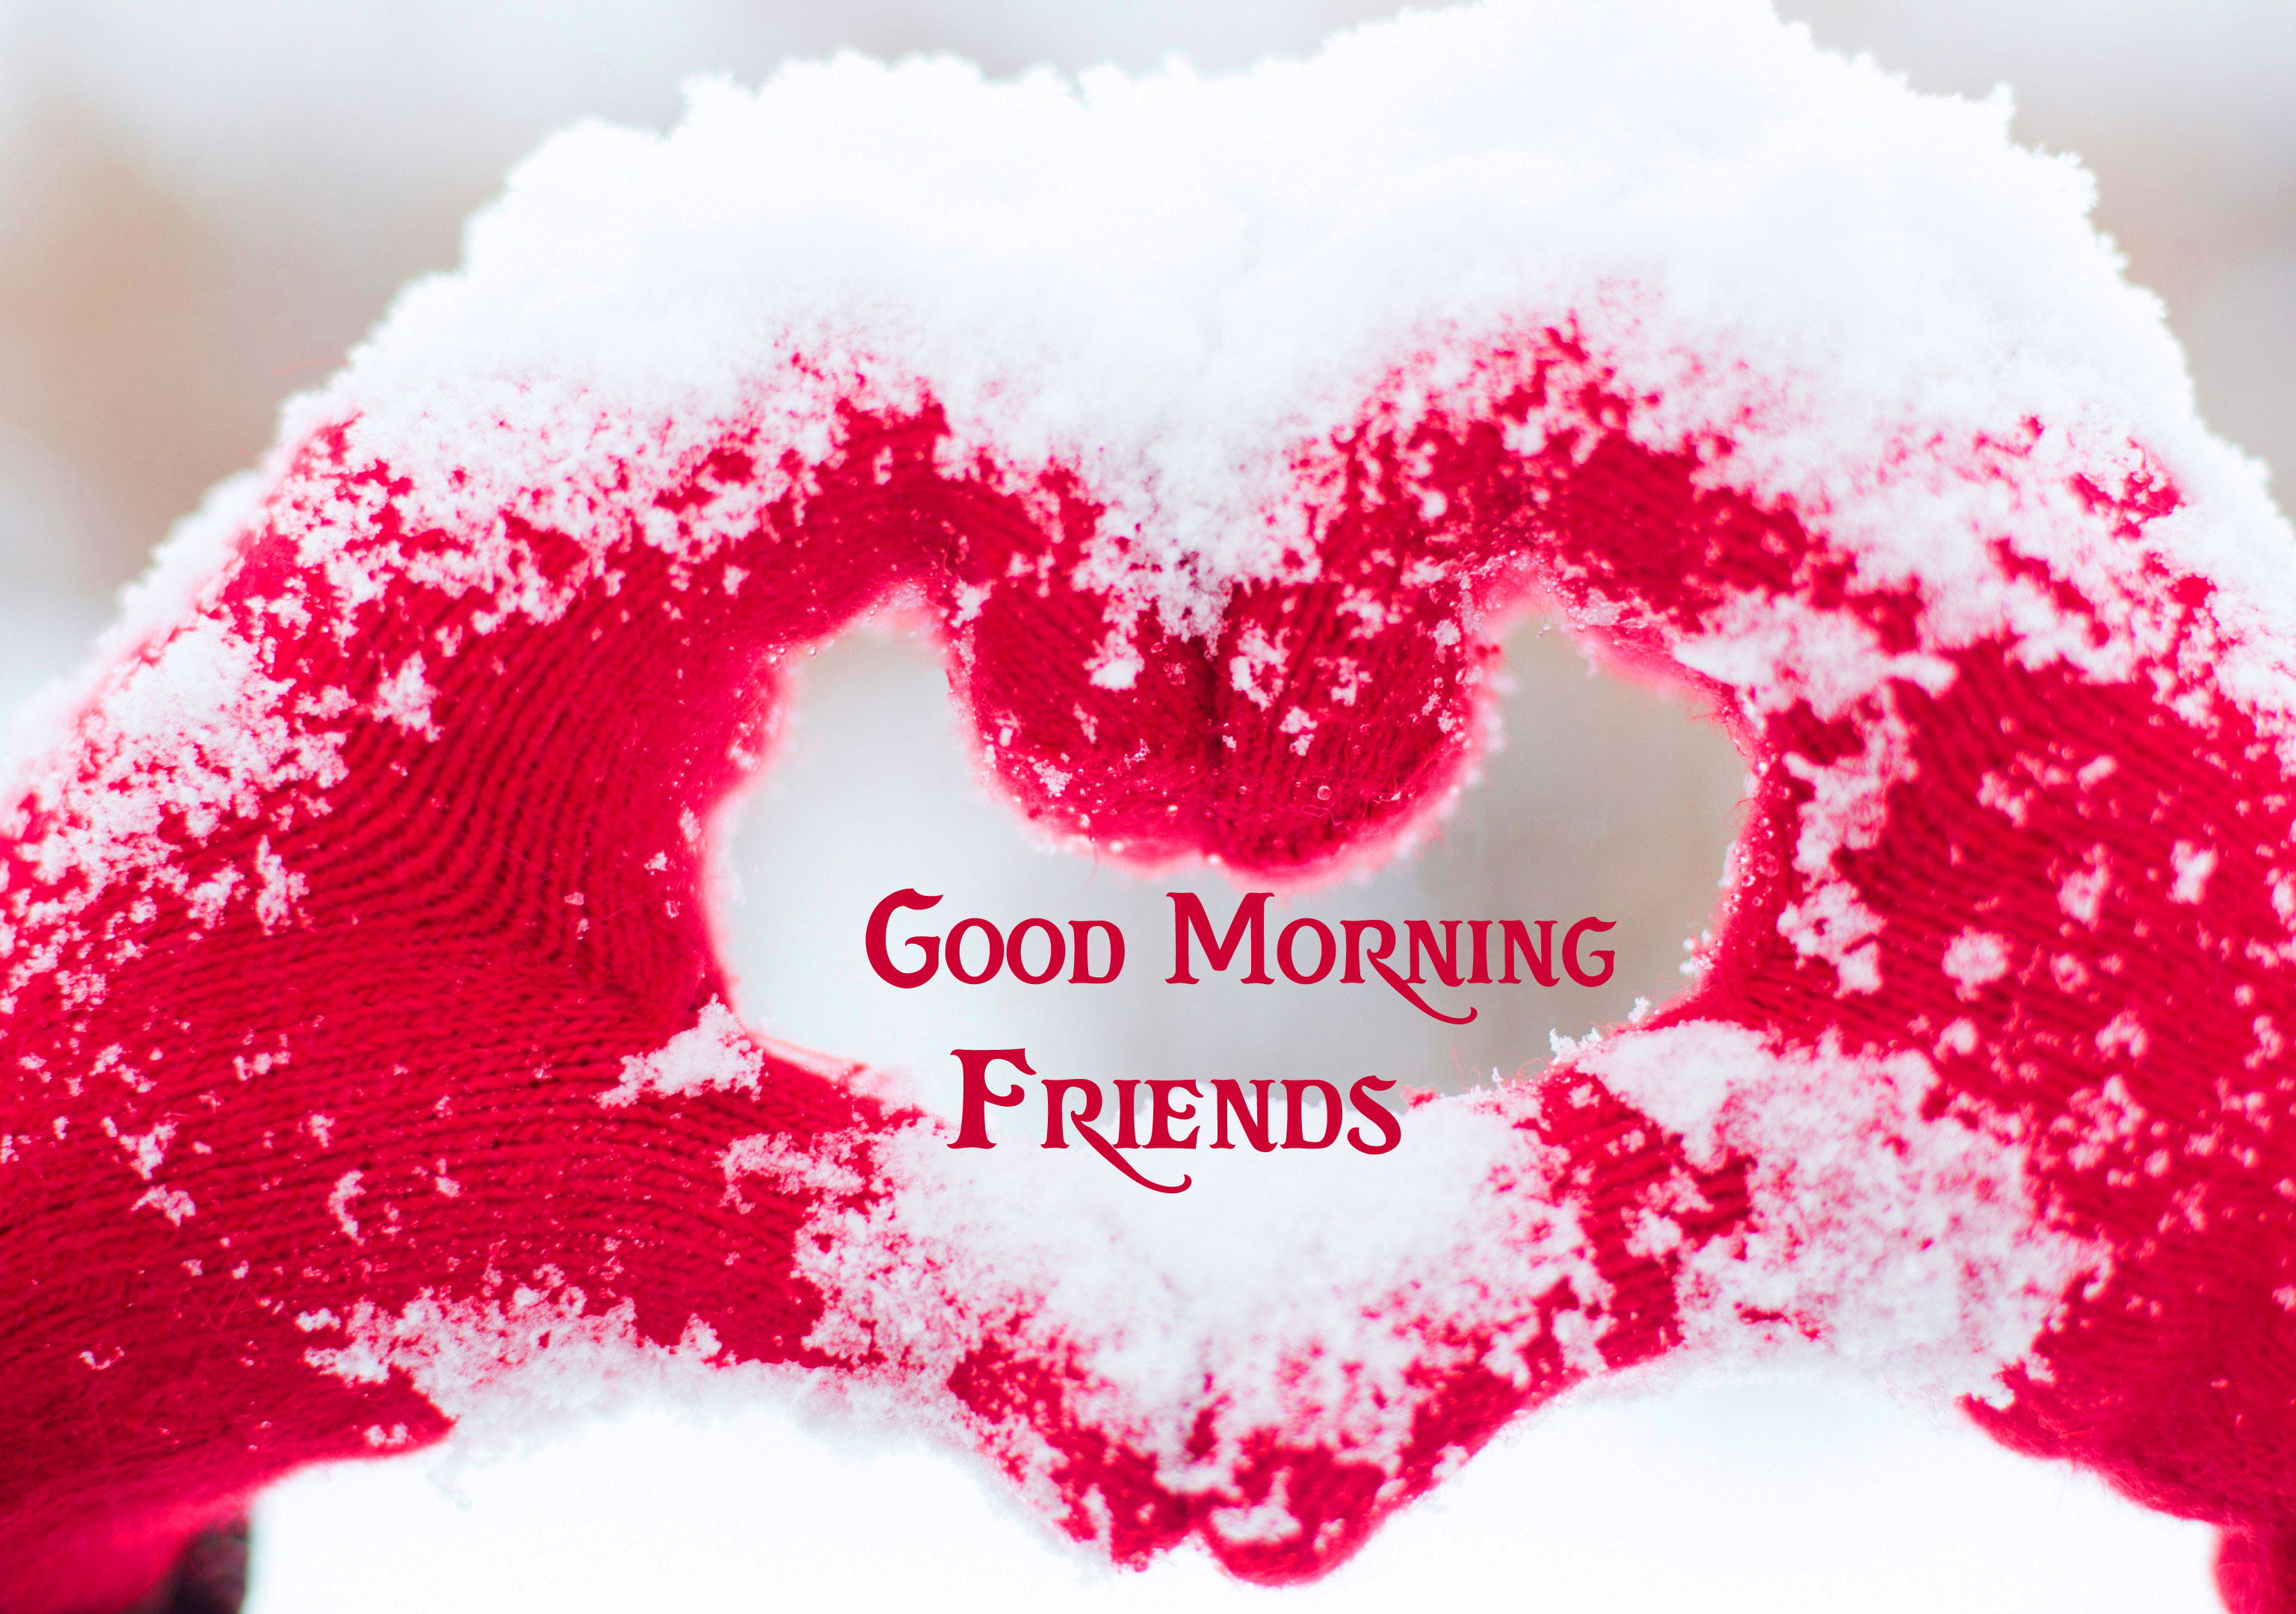 Good Morning Friends Images Pics Wallpaper DOWNLOAD